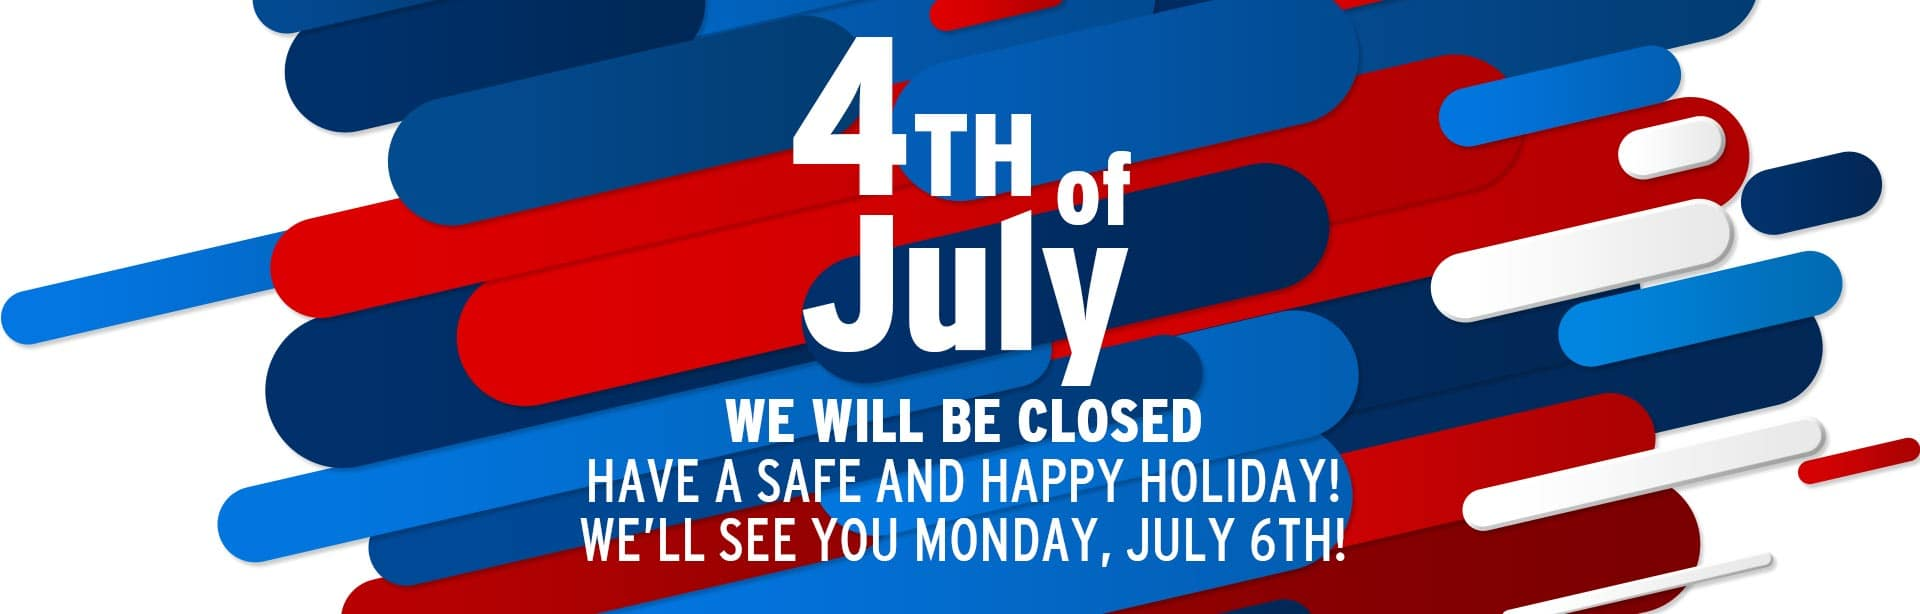 York CDJRF will be closed July 4th